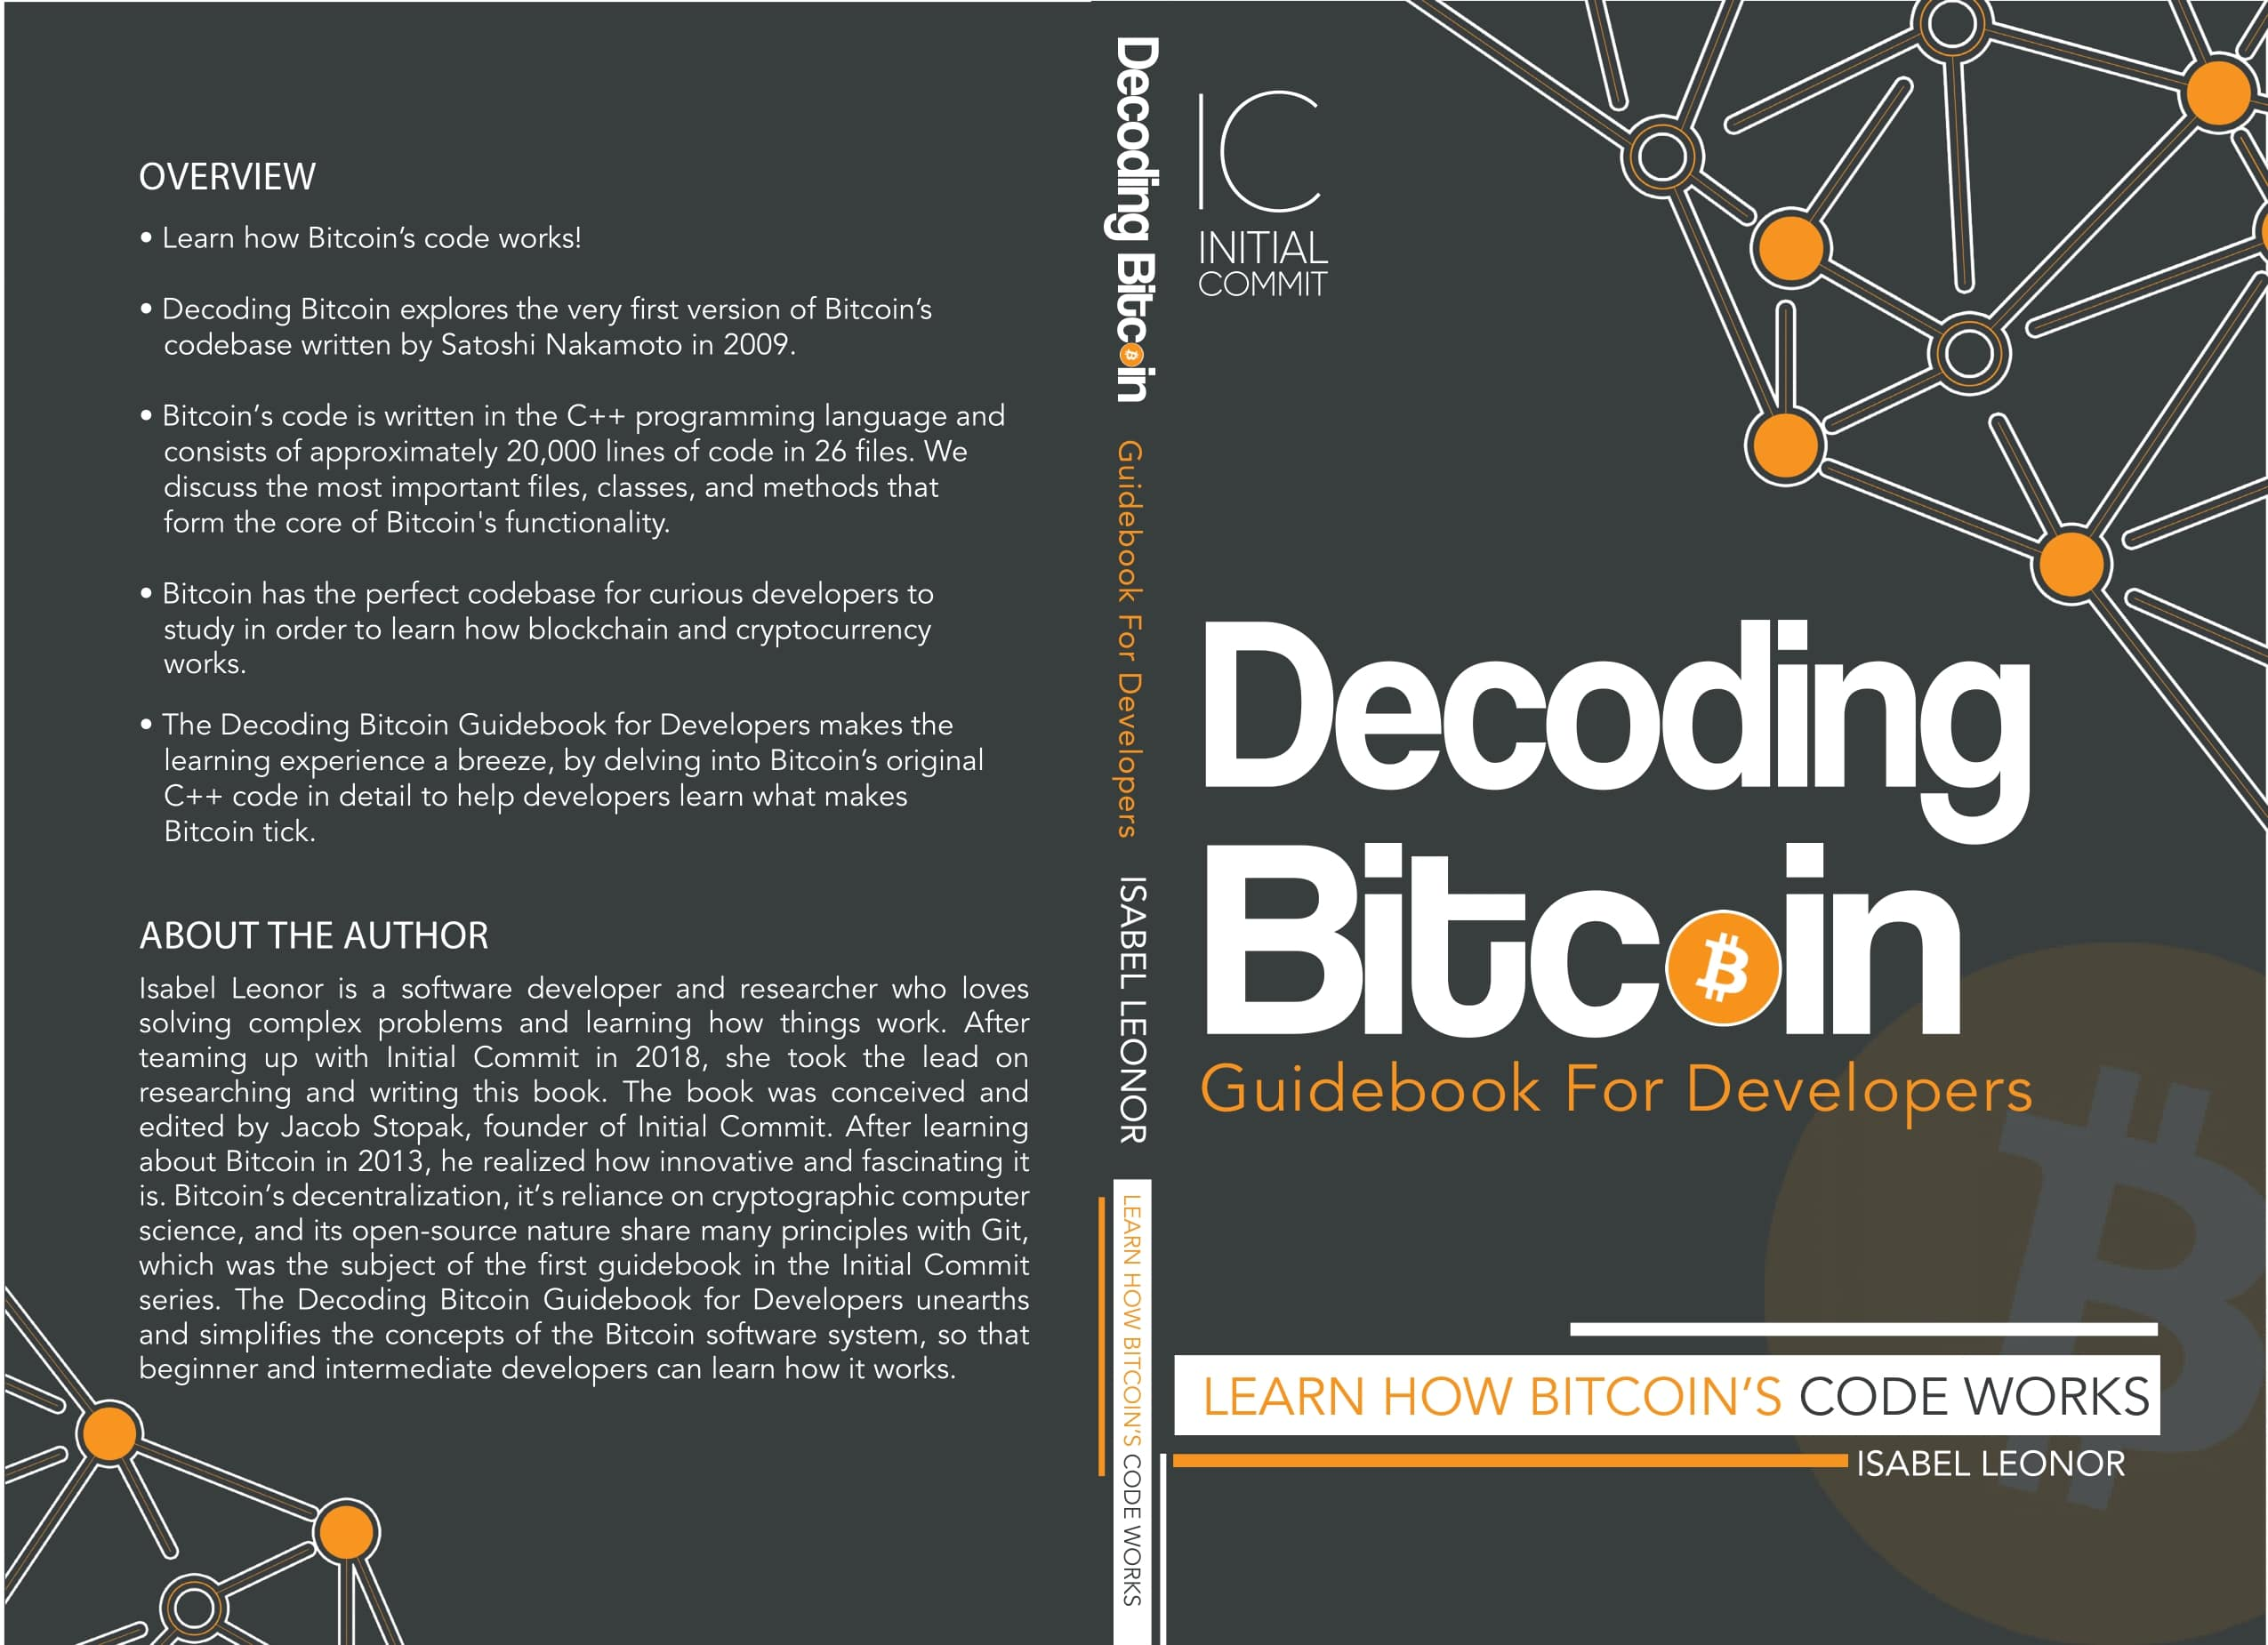 Baby Bitcoin Guidebook for Developers Cover